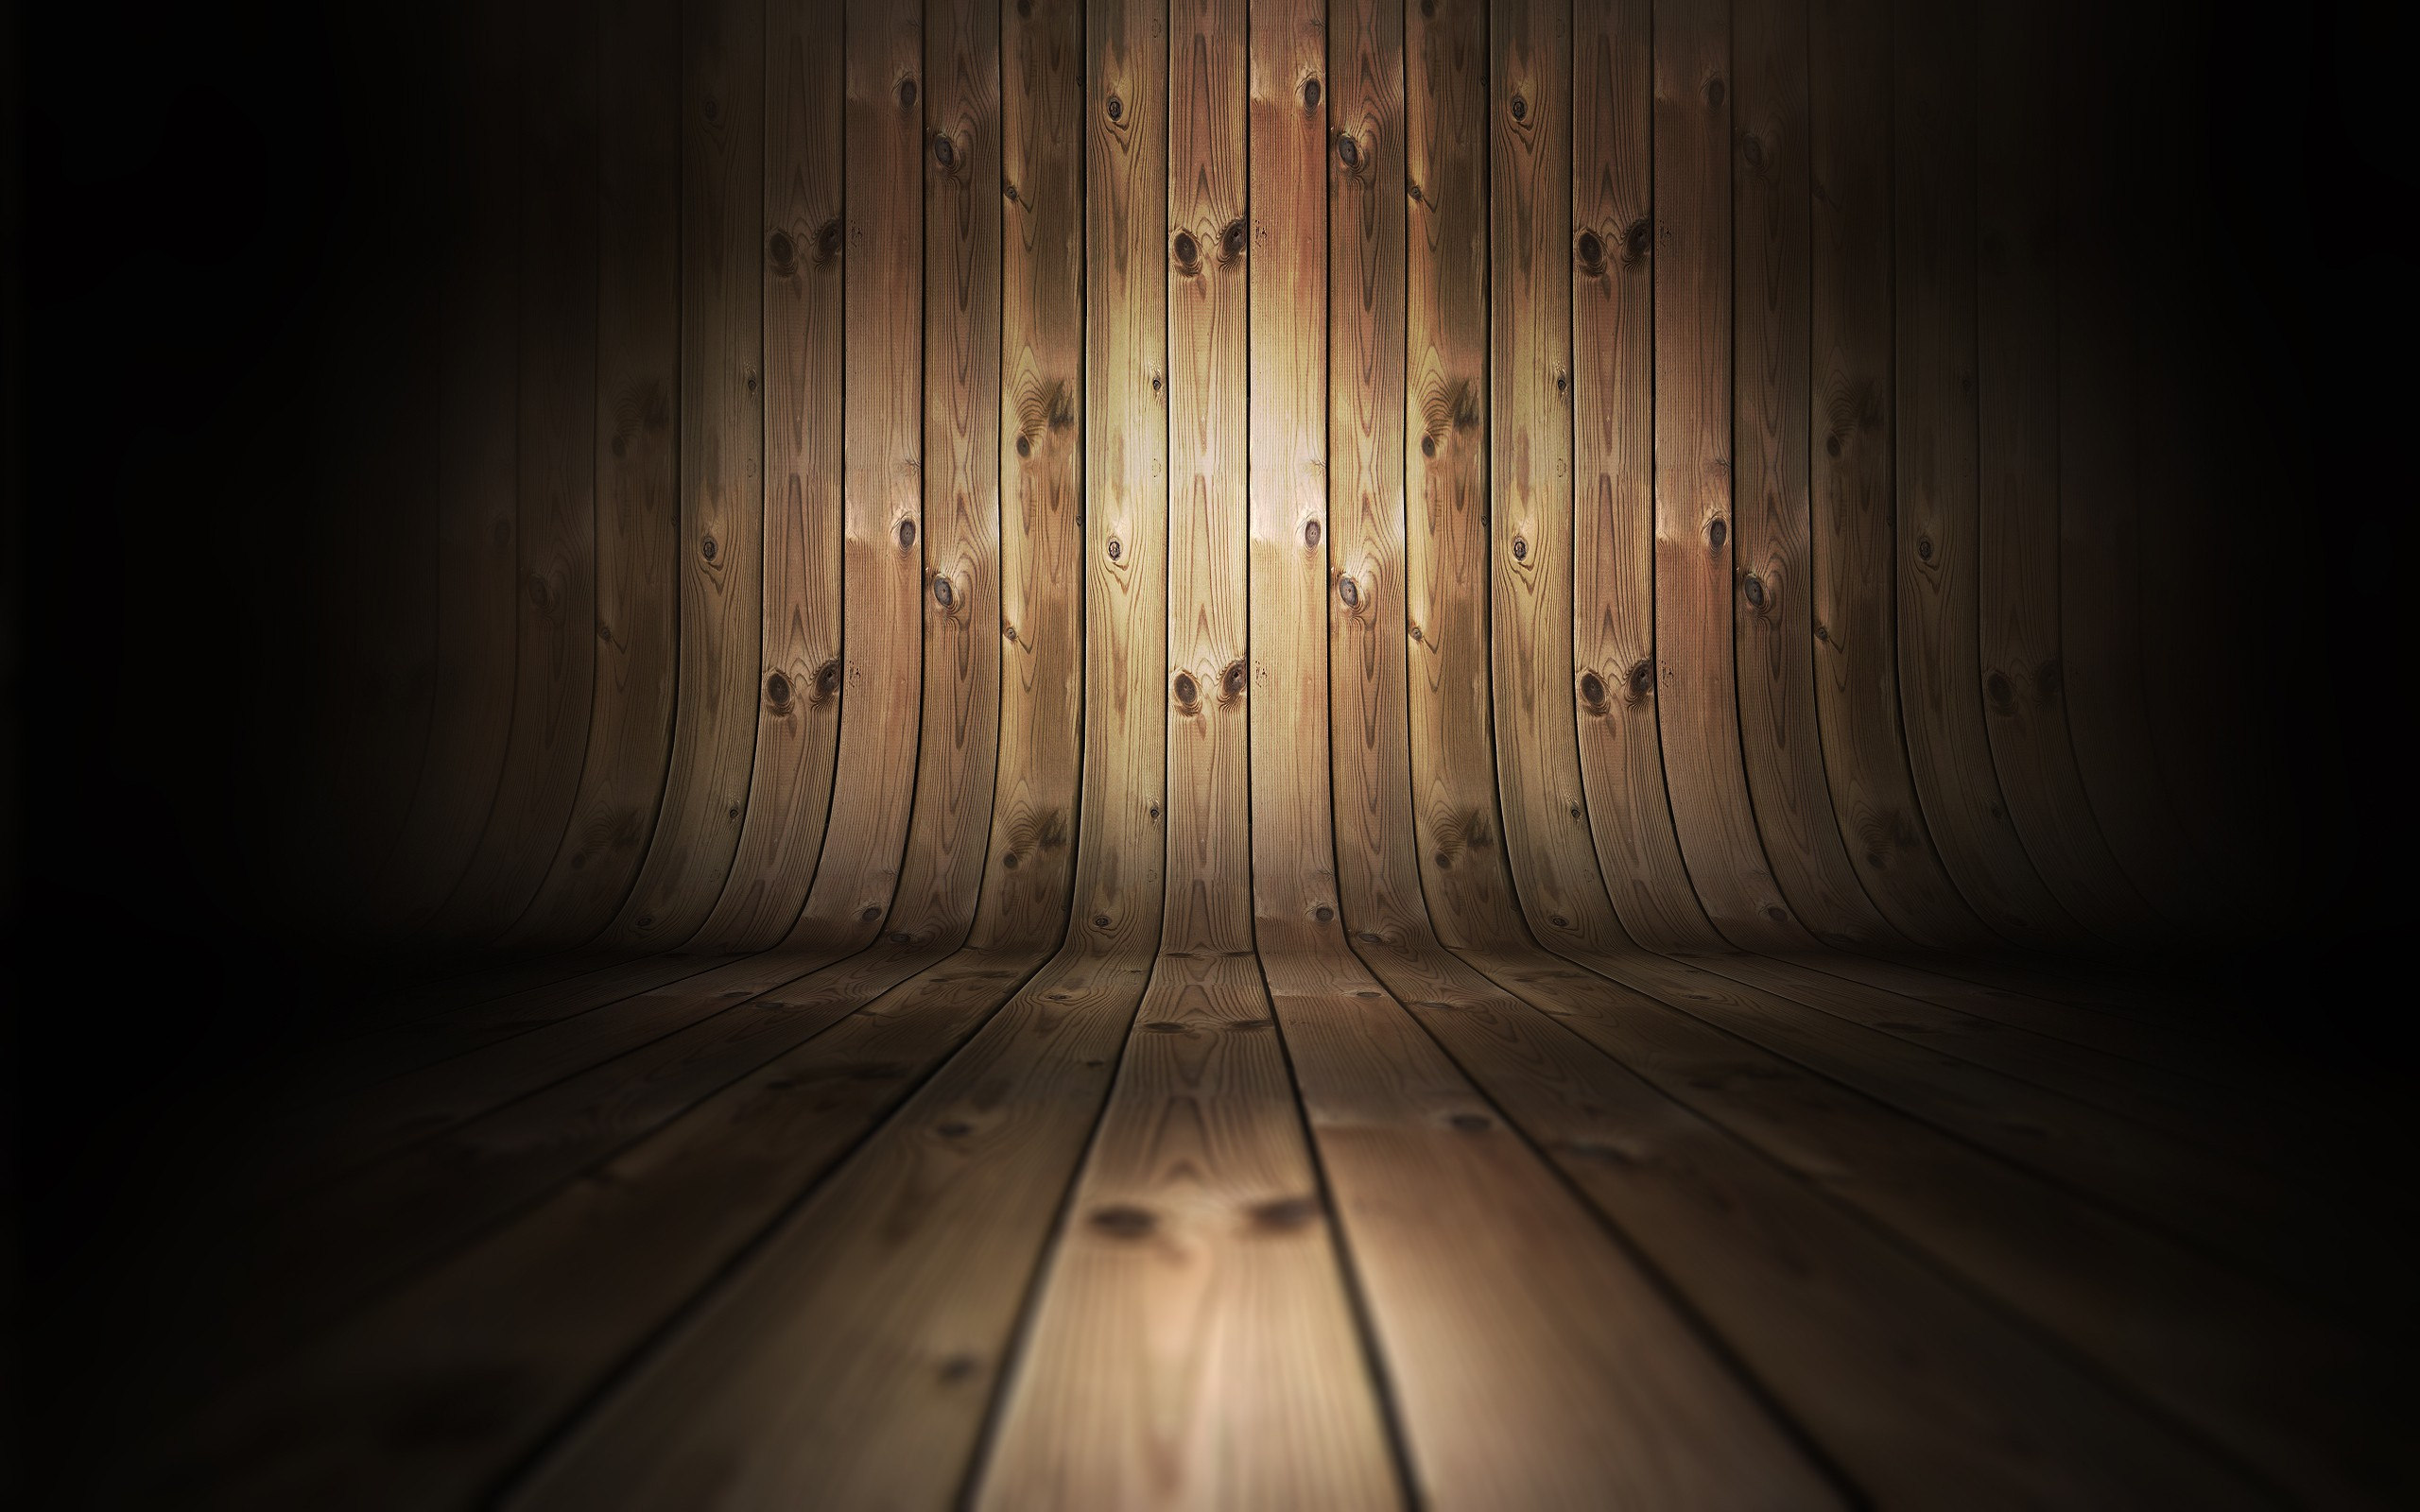 Cool hd wood wallpaper download free wallpapers and desktop - Hd Wood Wallpapers Wallpapersafari